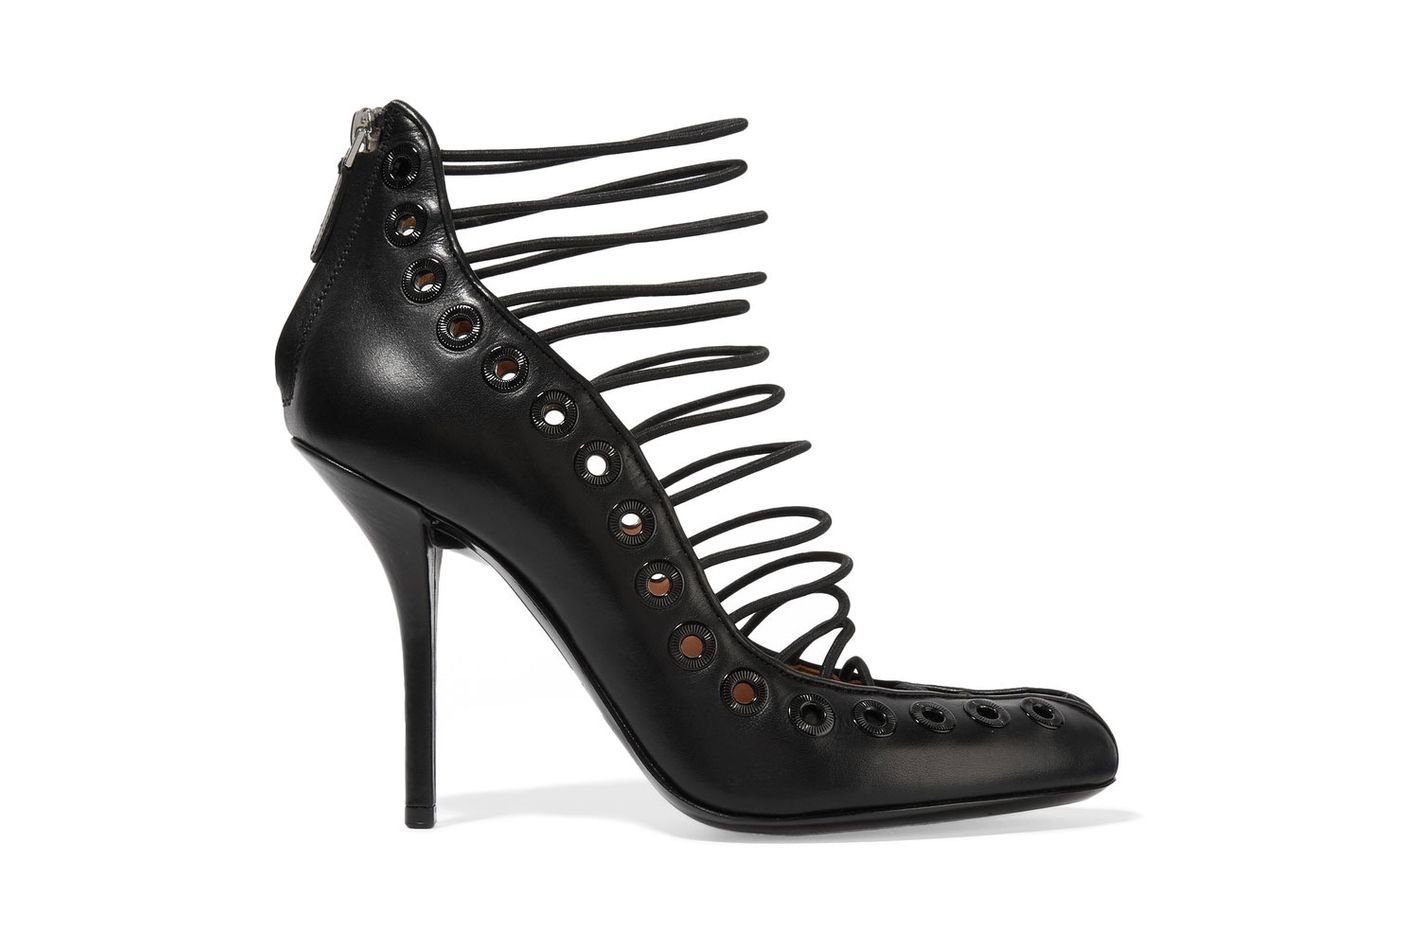 Givenchy Piva pumps